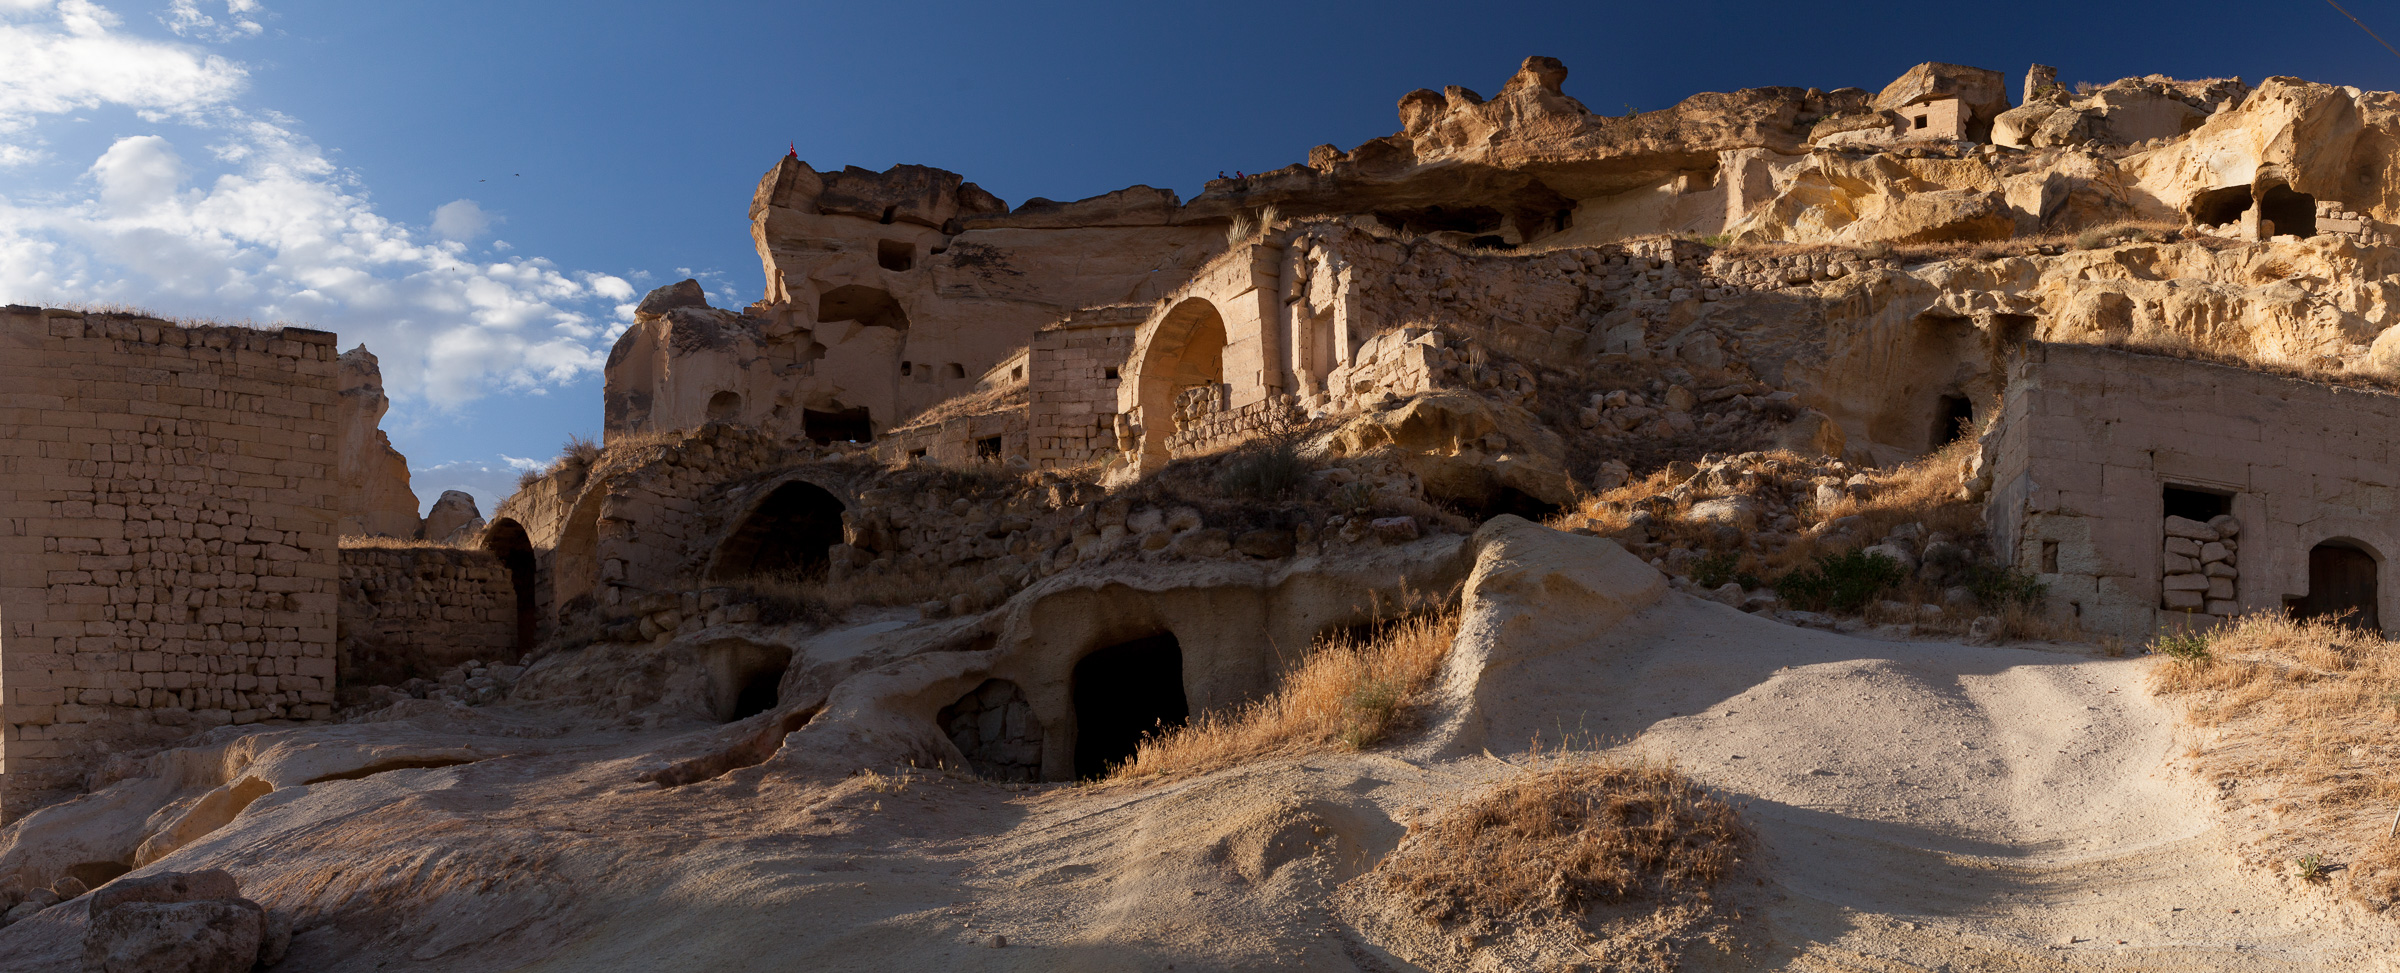 A panorama of the cliffs over Çavuşin in Cappadocia